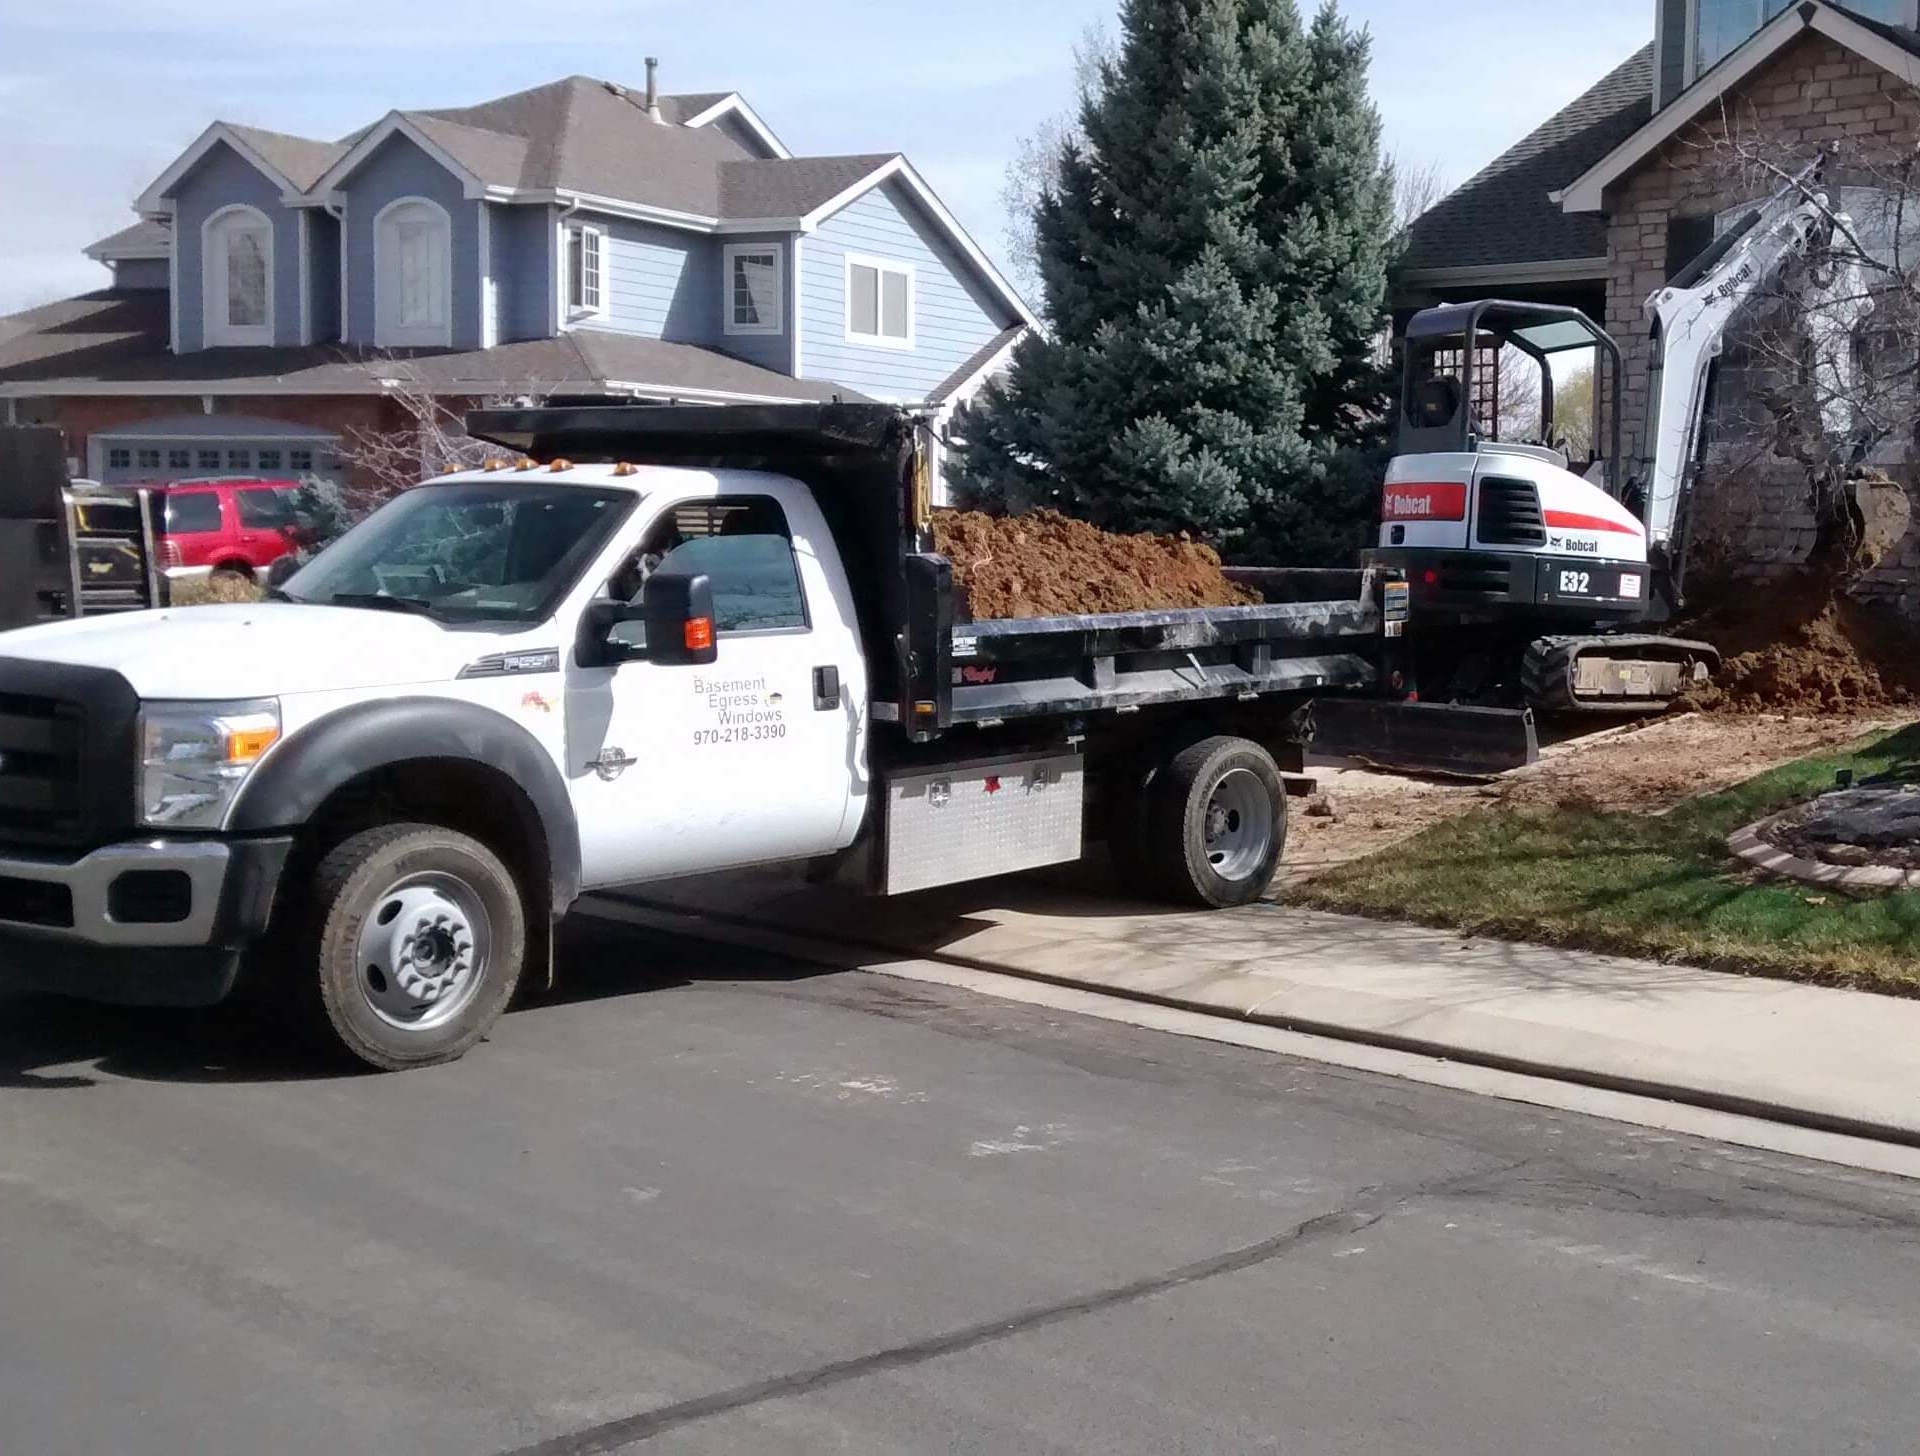 Top-Notch Equipment - We maintain our own fleet of state-of-the-art excavation equipment, trucks, and installation tools,so that your project will never suffer delays because of the faulty, overused, outdated, or poorly maintained rental equipment that our competitors often rely on. Thanks to this, we can install your basement windows and window wells more quickly and with better results than the competition.